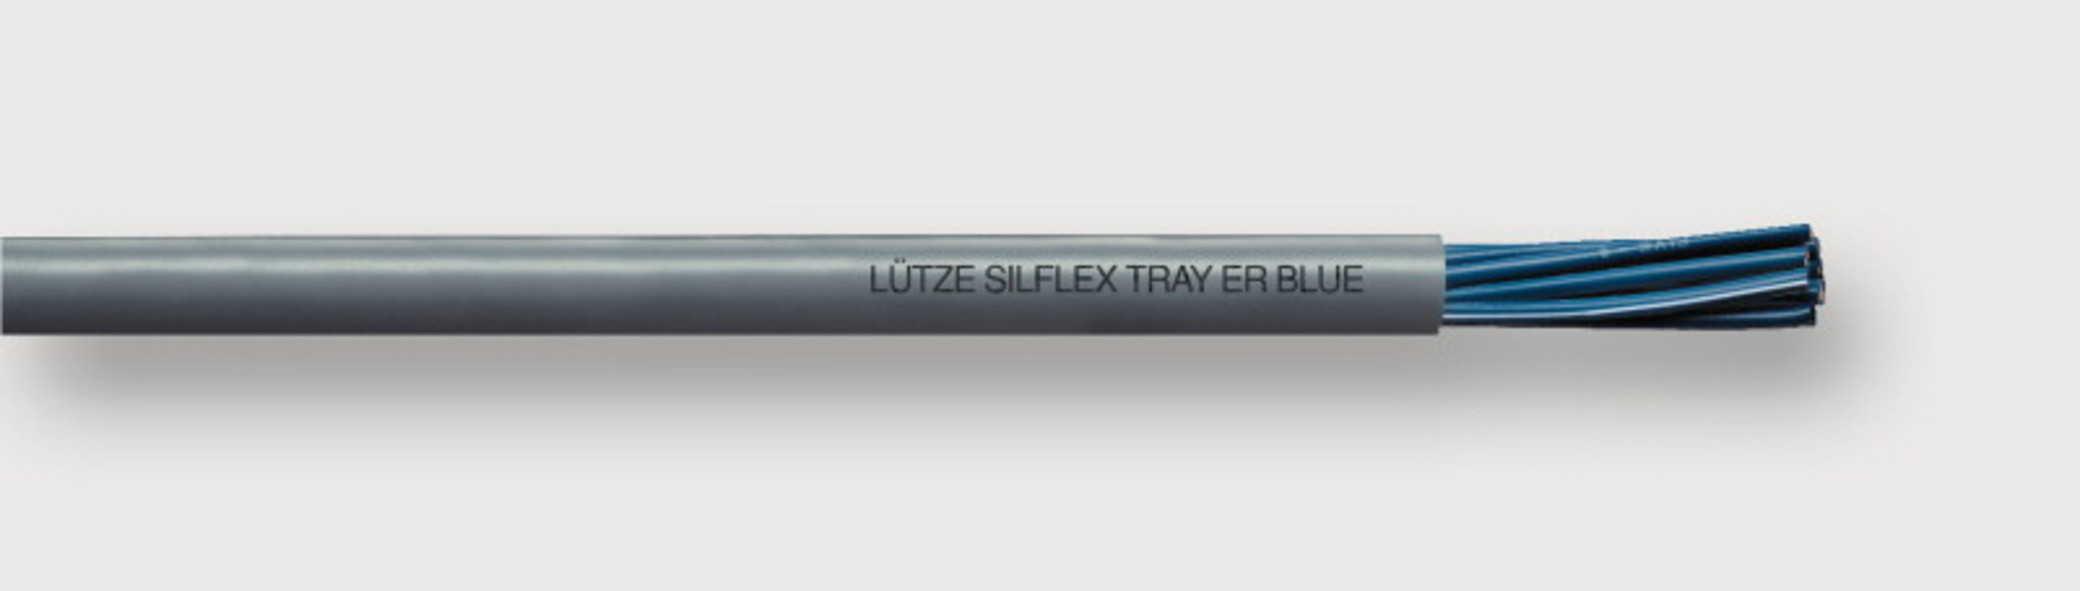 A3251837 - LÜTZE SILFLEX® Tray-ER Blue PVC with UL/TC-ER/CE Approvals, Blue Conductors for 24 V Applications